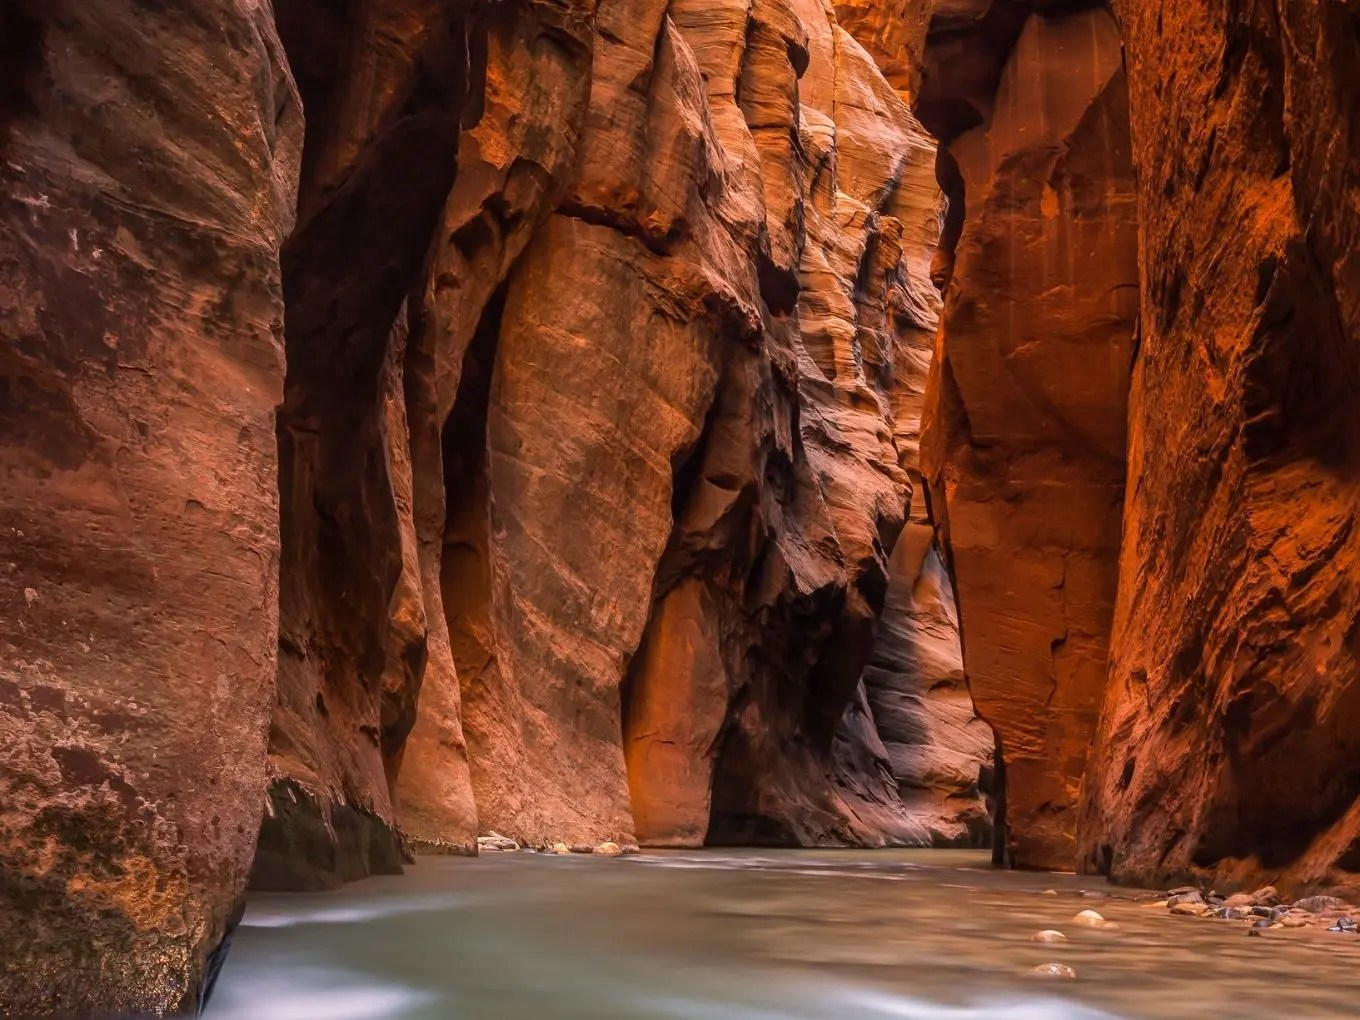 Planning Your Trip To Zion National Park